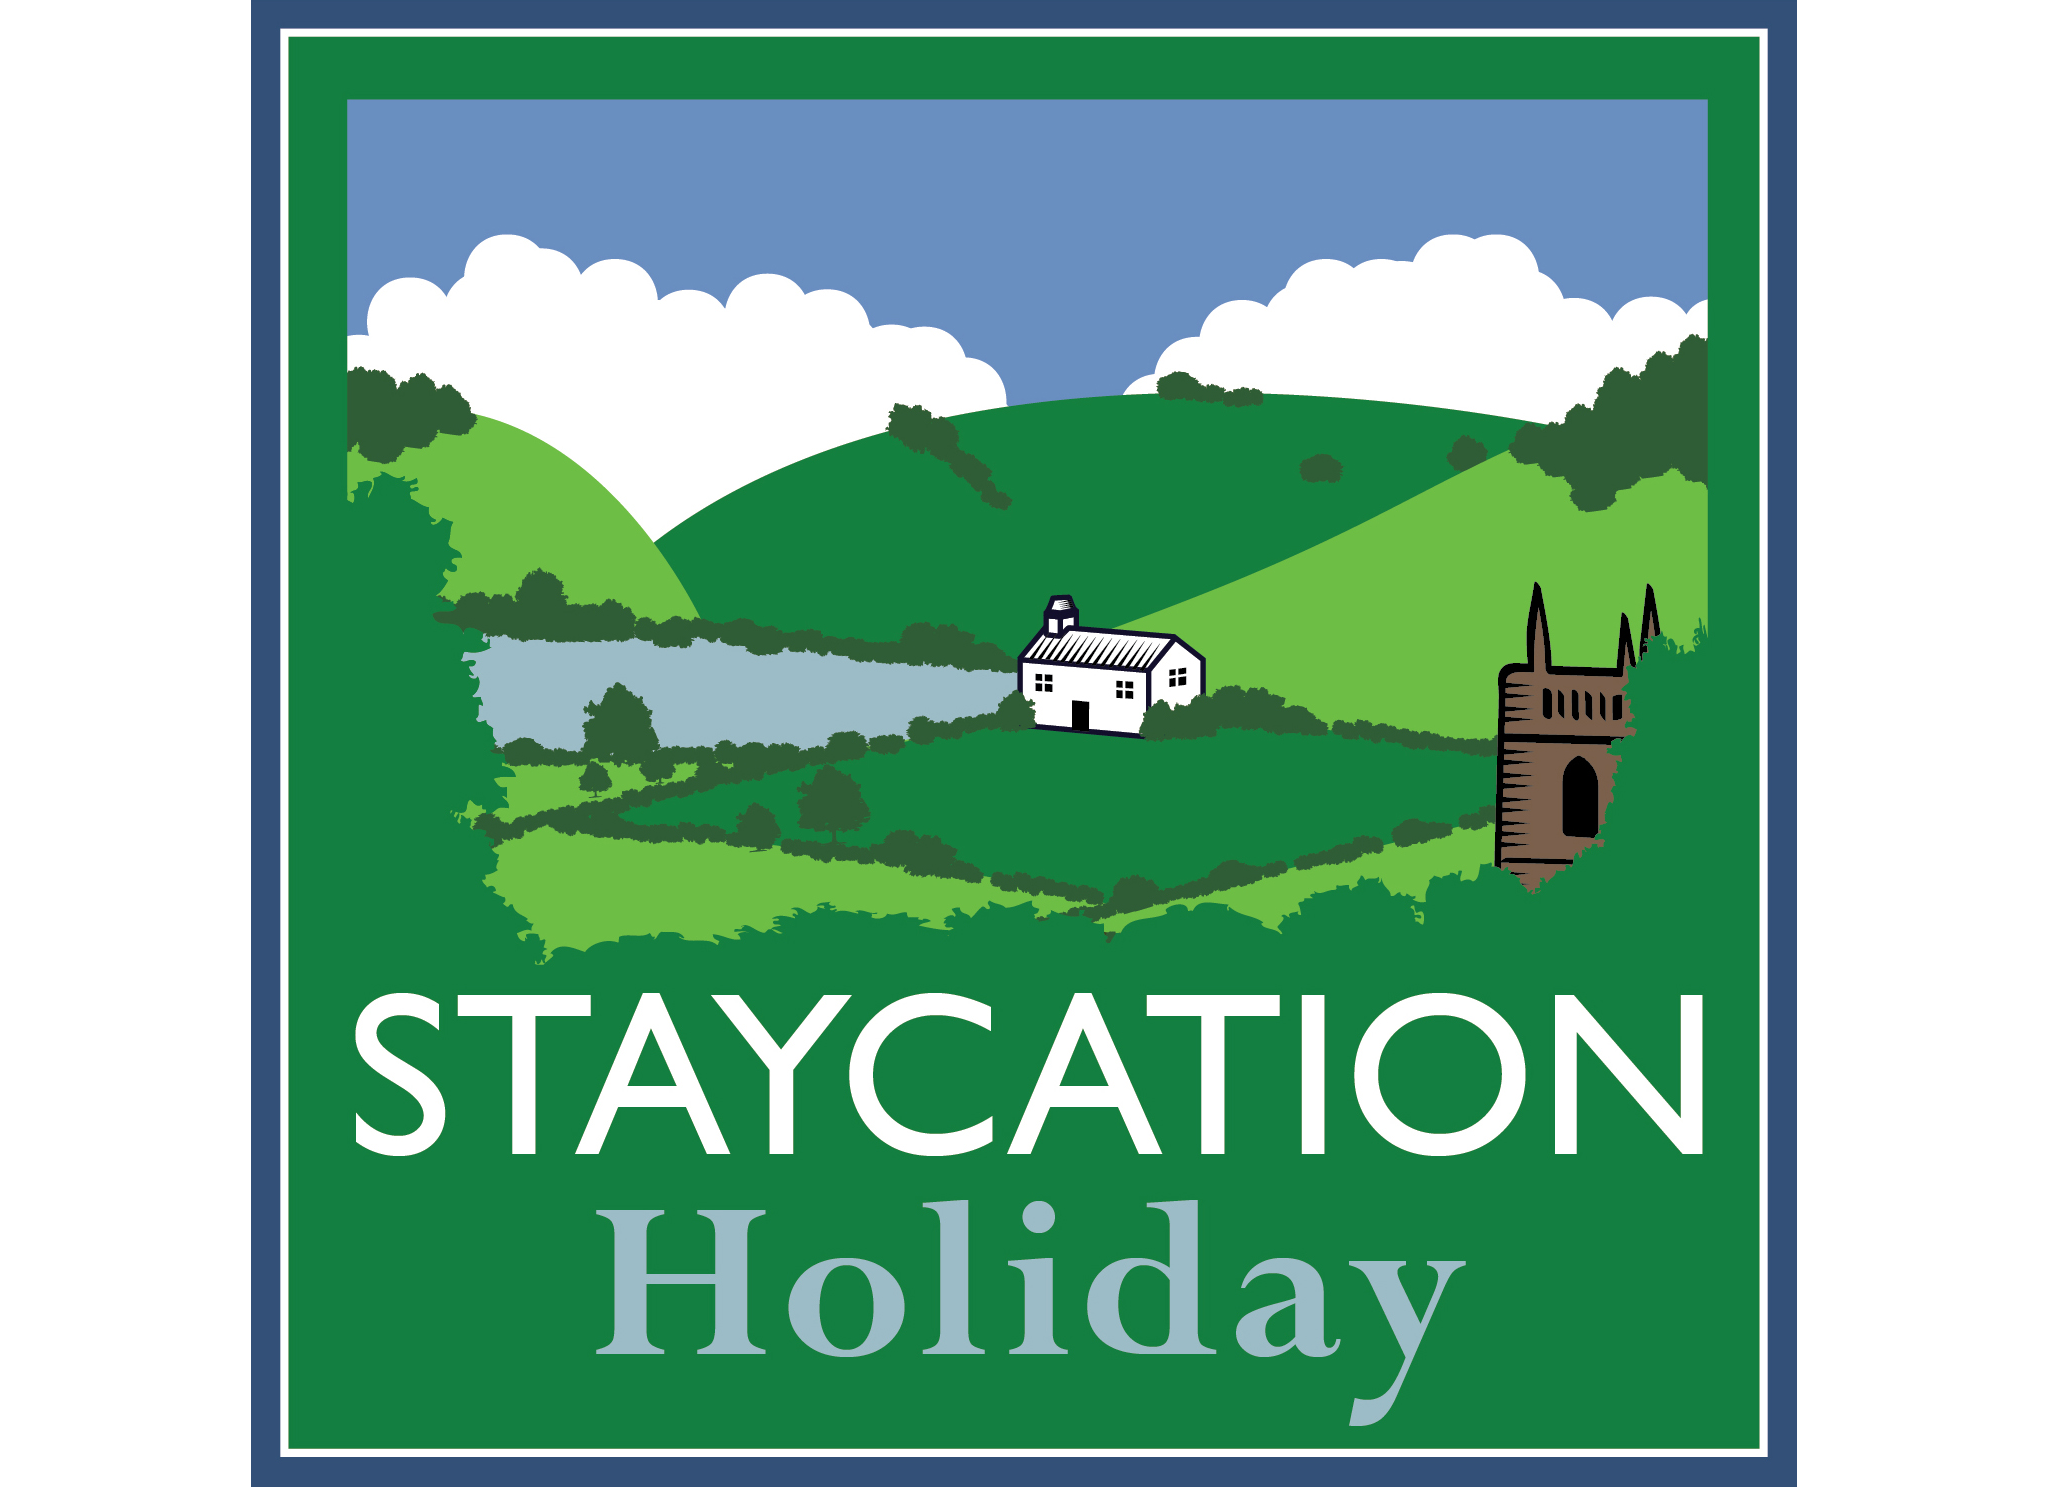 Staycation Holidays logo